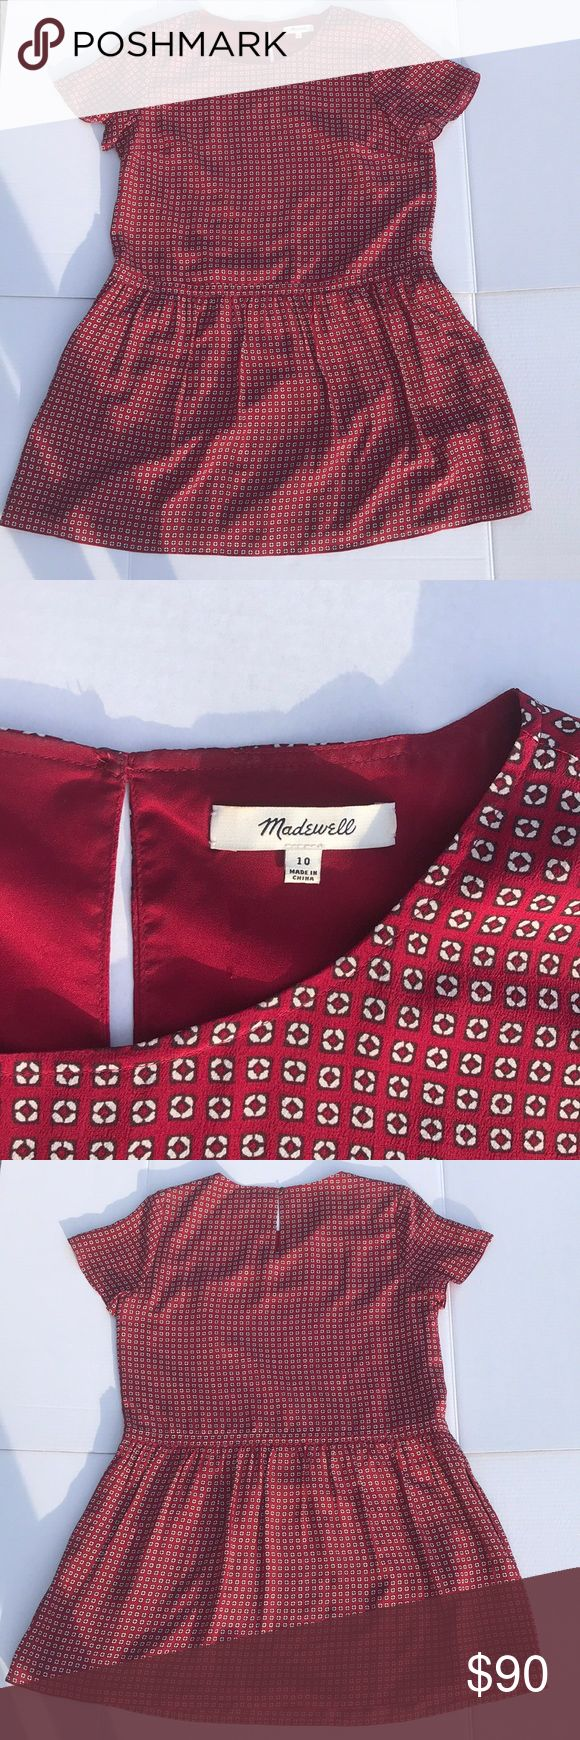 19430 Best My Posh Picks Images On Pinterest Shirts Blouse And Torch Tunik Women Burgundy Maroon Xl Madewell Size 10 Red Tunic Dress